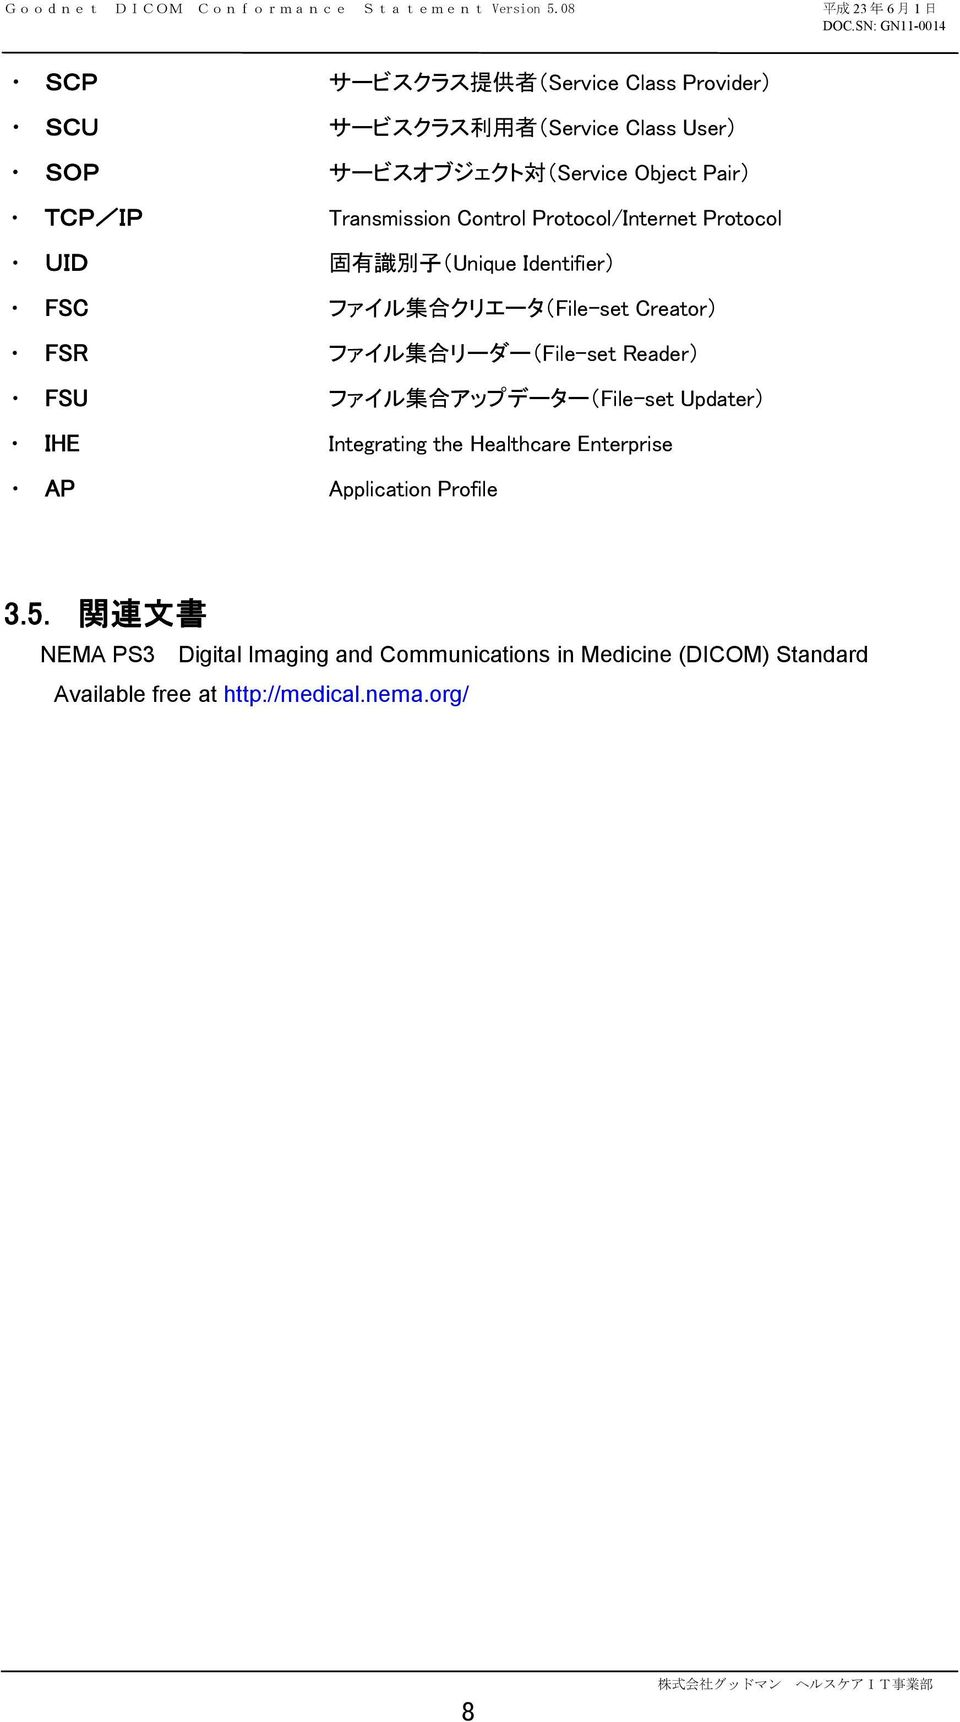 集 合 リーダー(File-set Reader) FSU ファイル 集 合 アップデーター(File-set Updater) IHE Integrating the Healthcare Enterprise AP Application